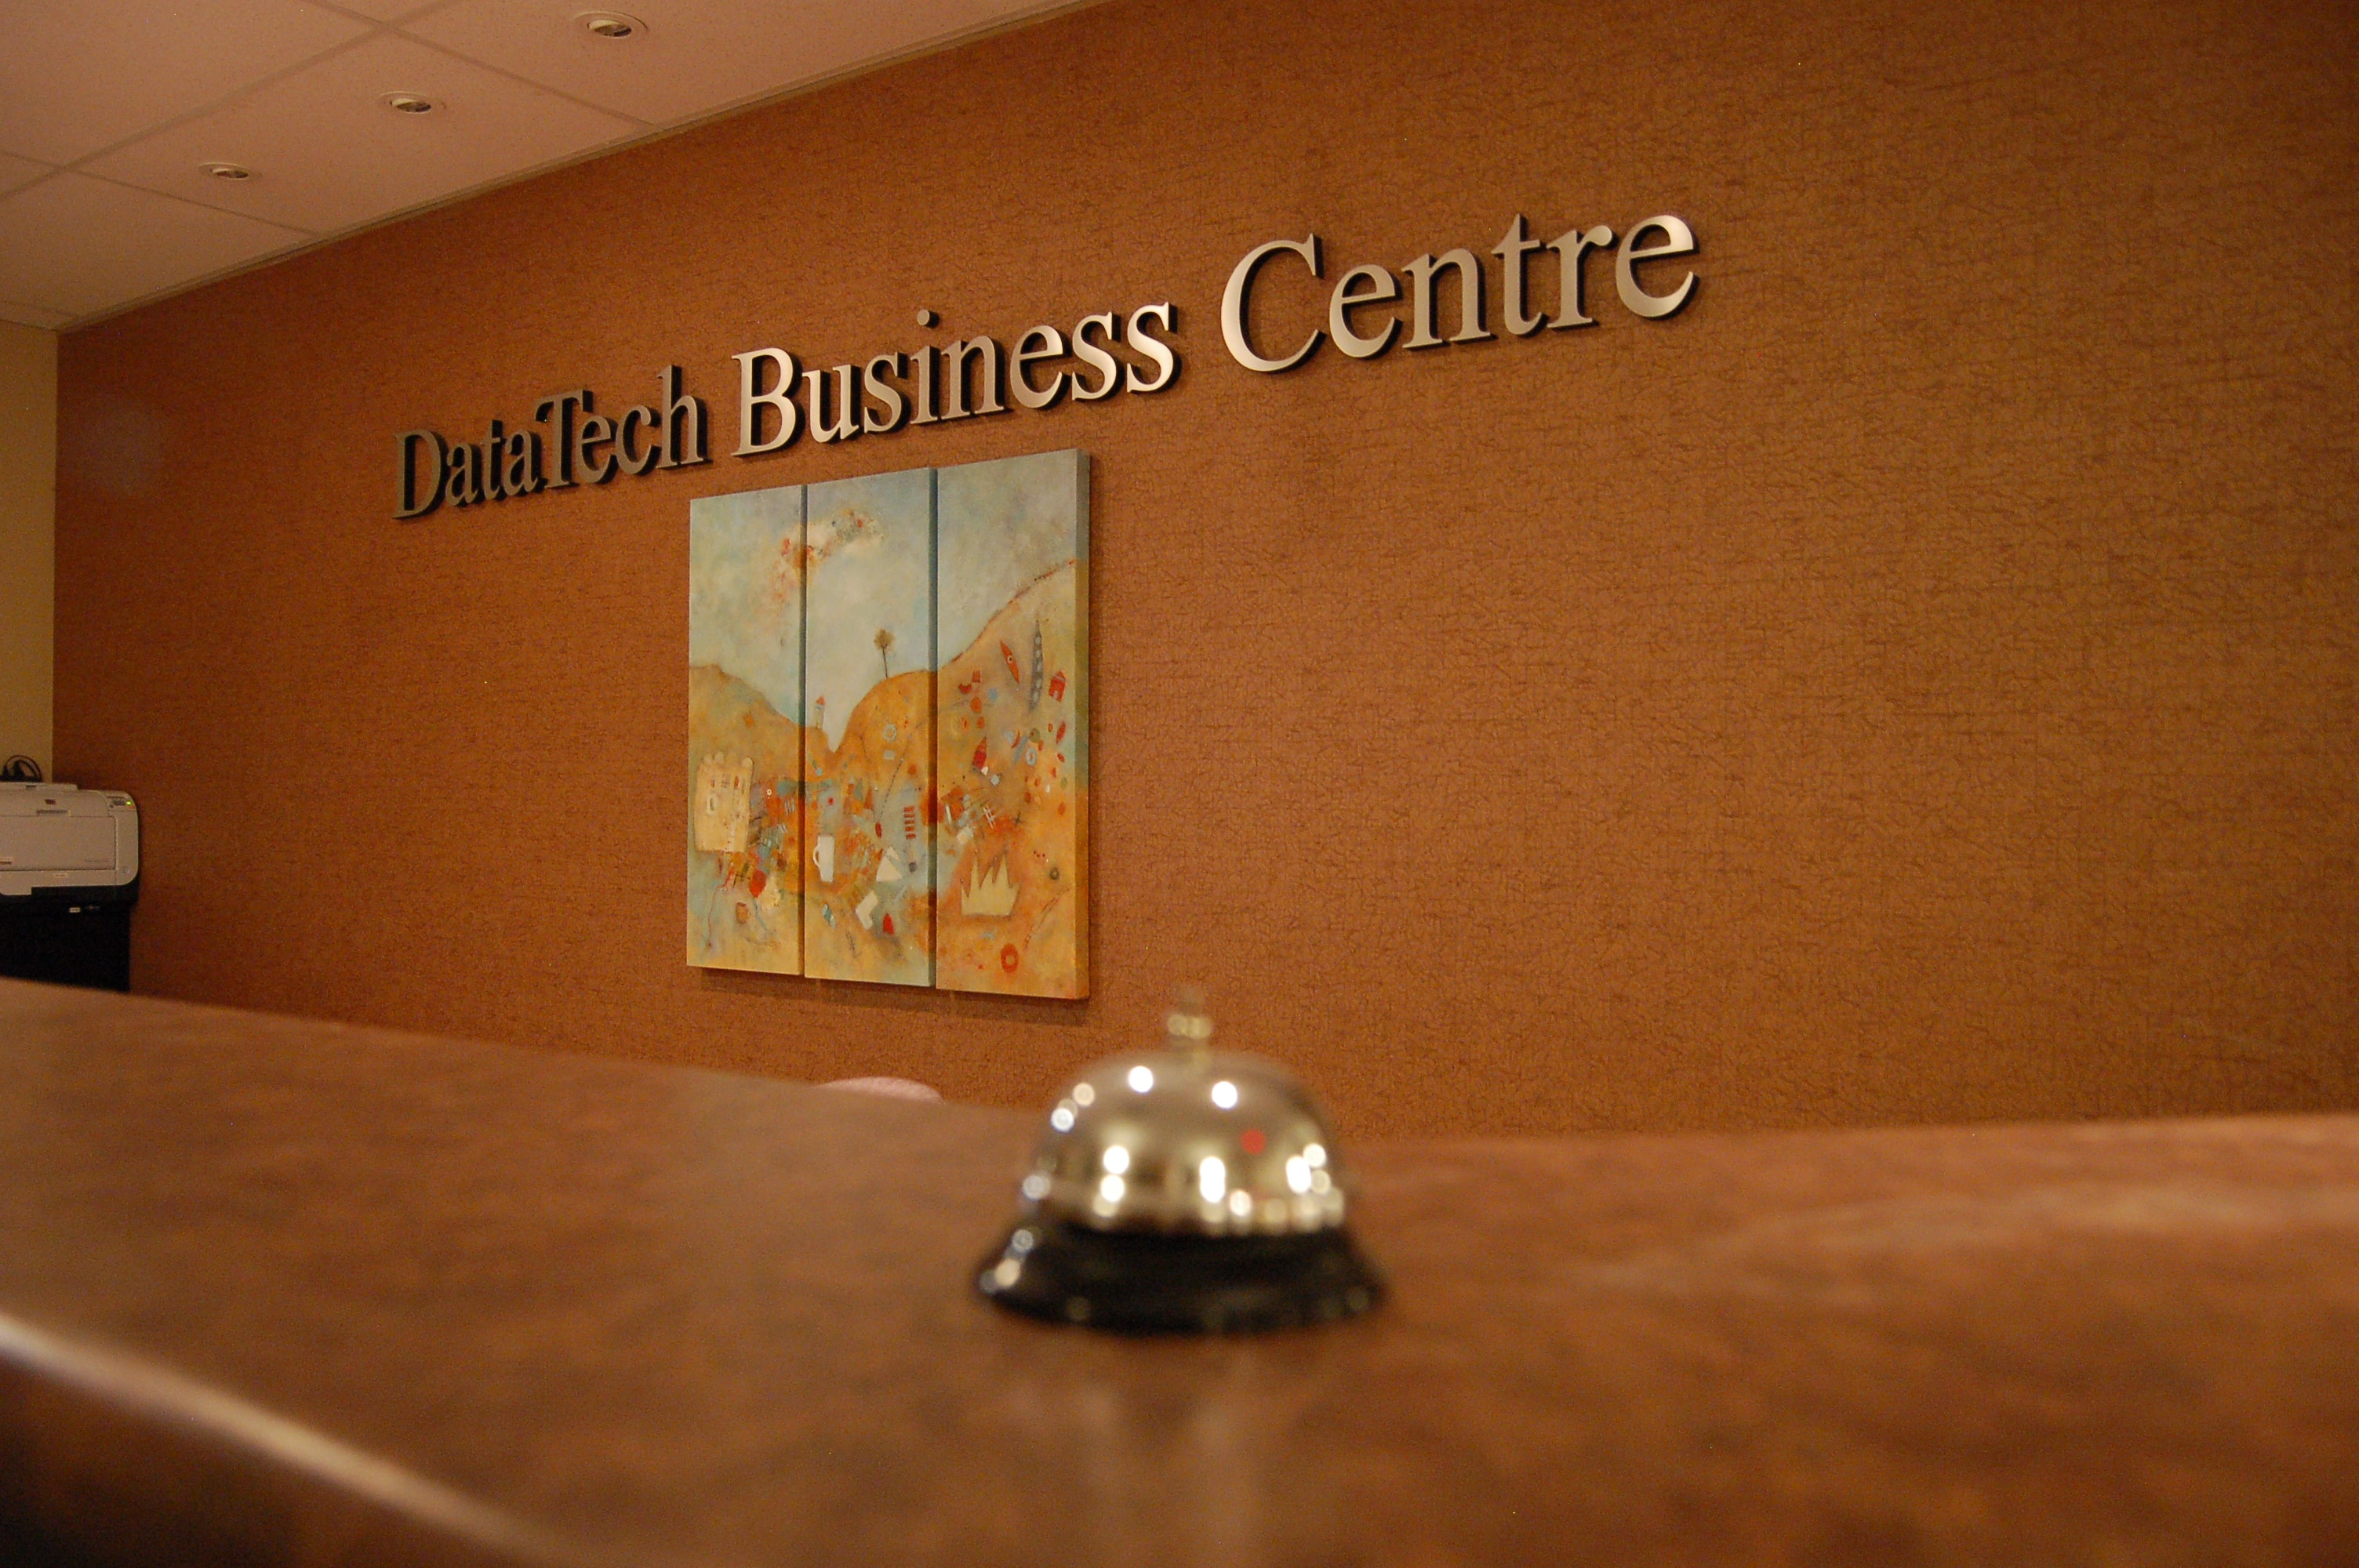 datatech, office space victoria, gallery. photo gallery, front desk sign